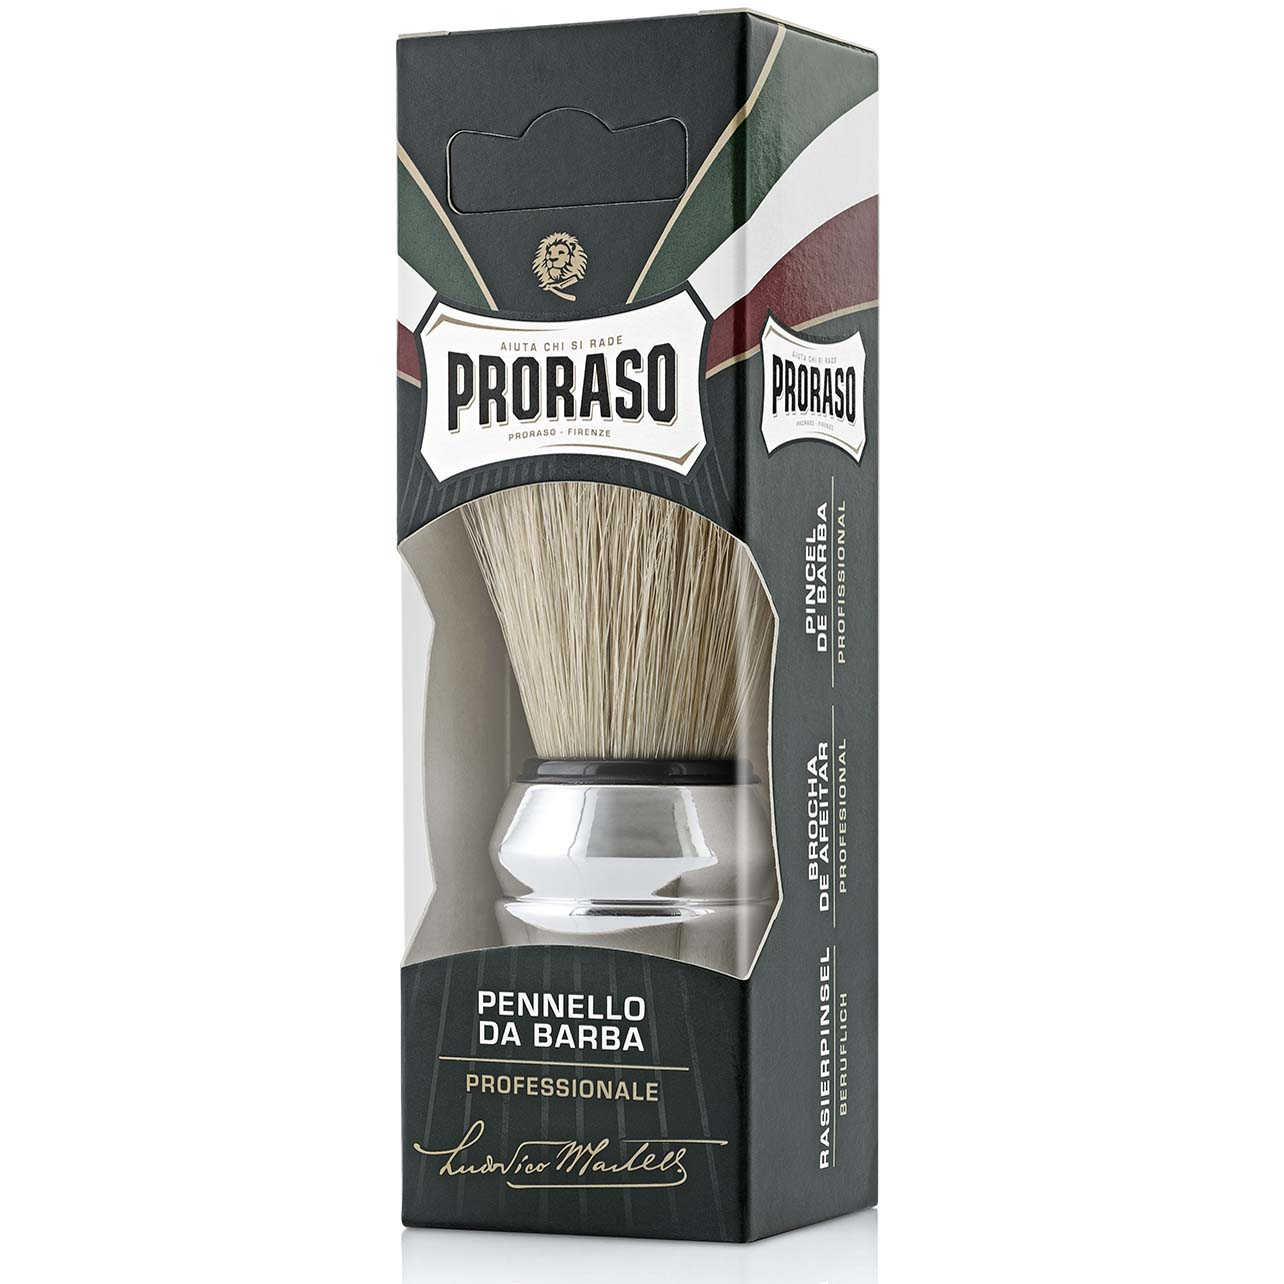 Shaving brush Proraso